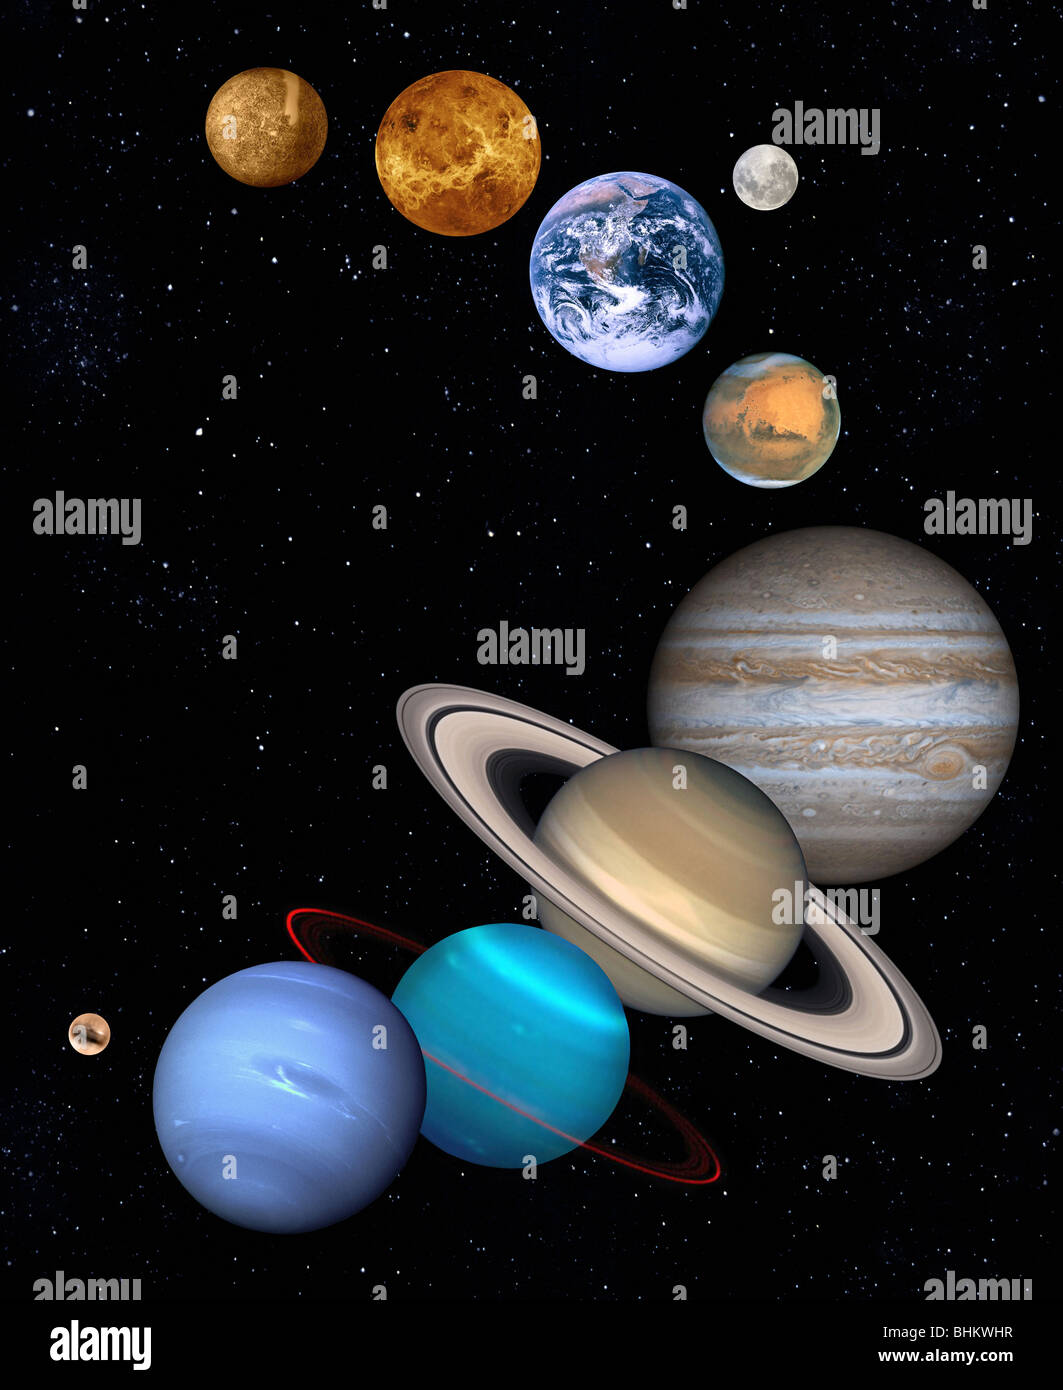 Solar System Stock Photos & Solar System Stock Images - Alamy